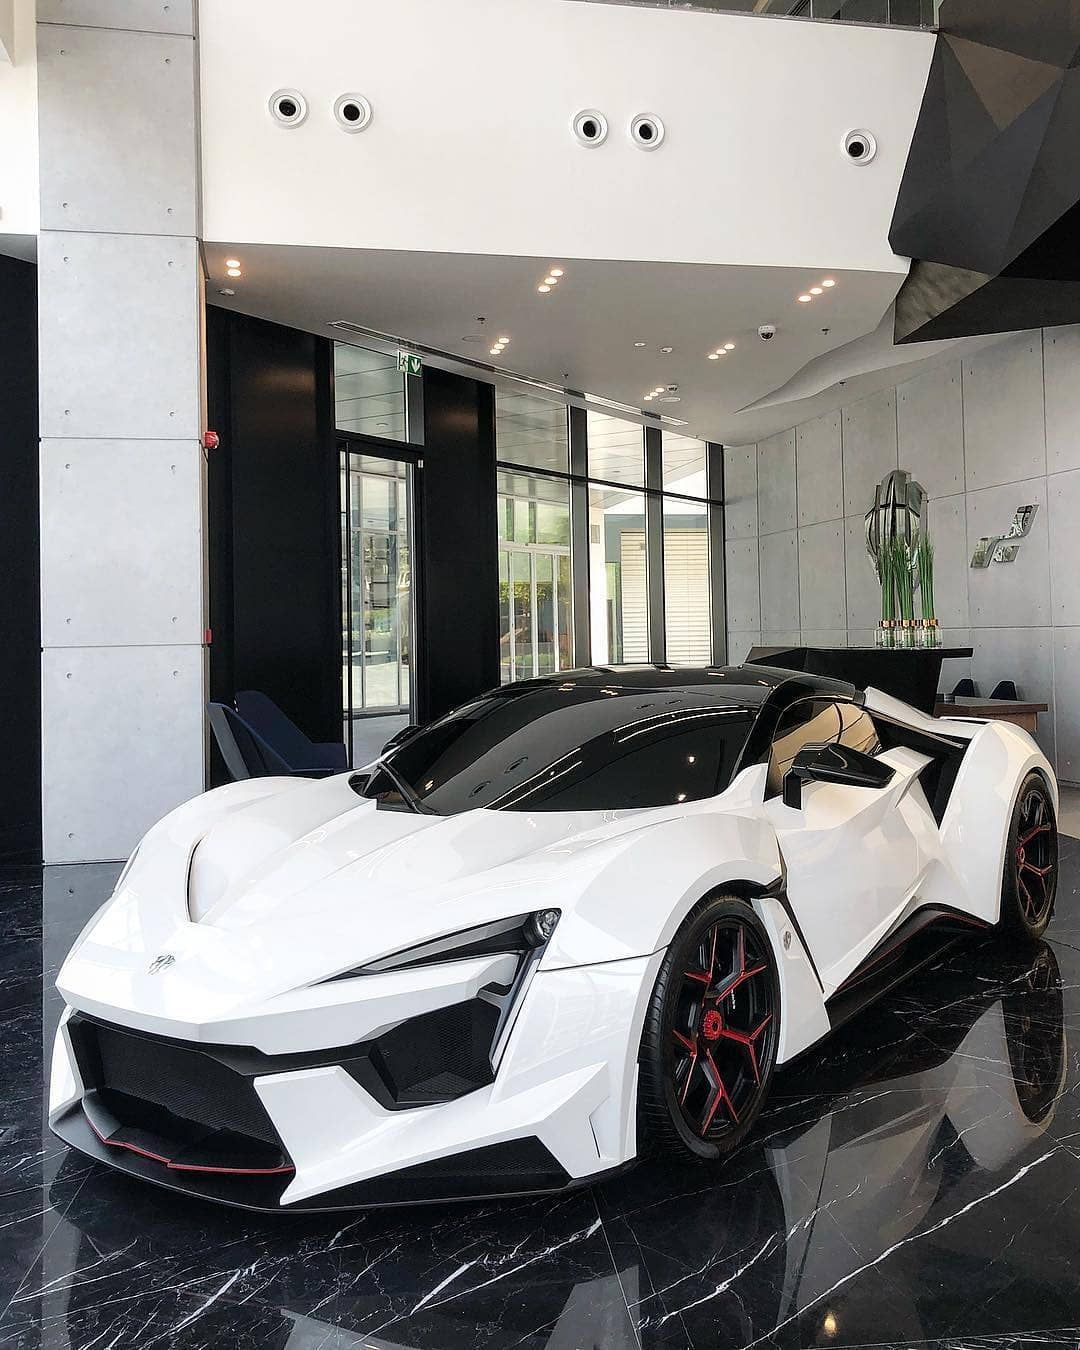 Stormtrooper S Daily Driver Proper Hypercar Or Not Follow Supercarsbuzz For More C Credits Lemansh Best Luxury Cars Luxury Cars Top Luxury Cars